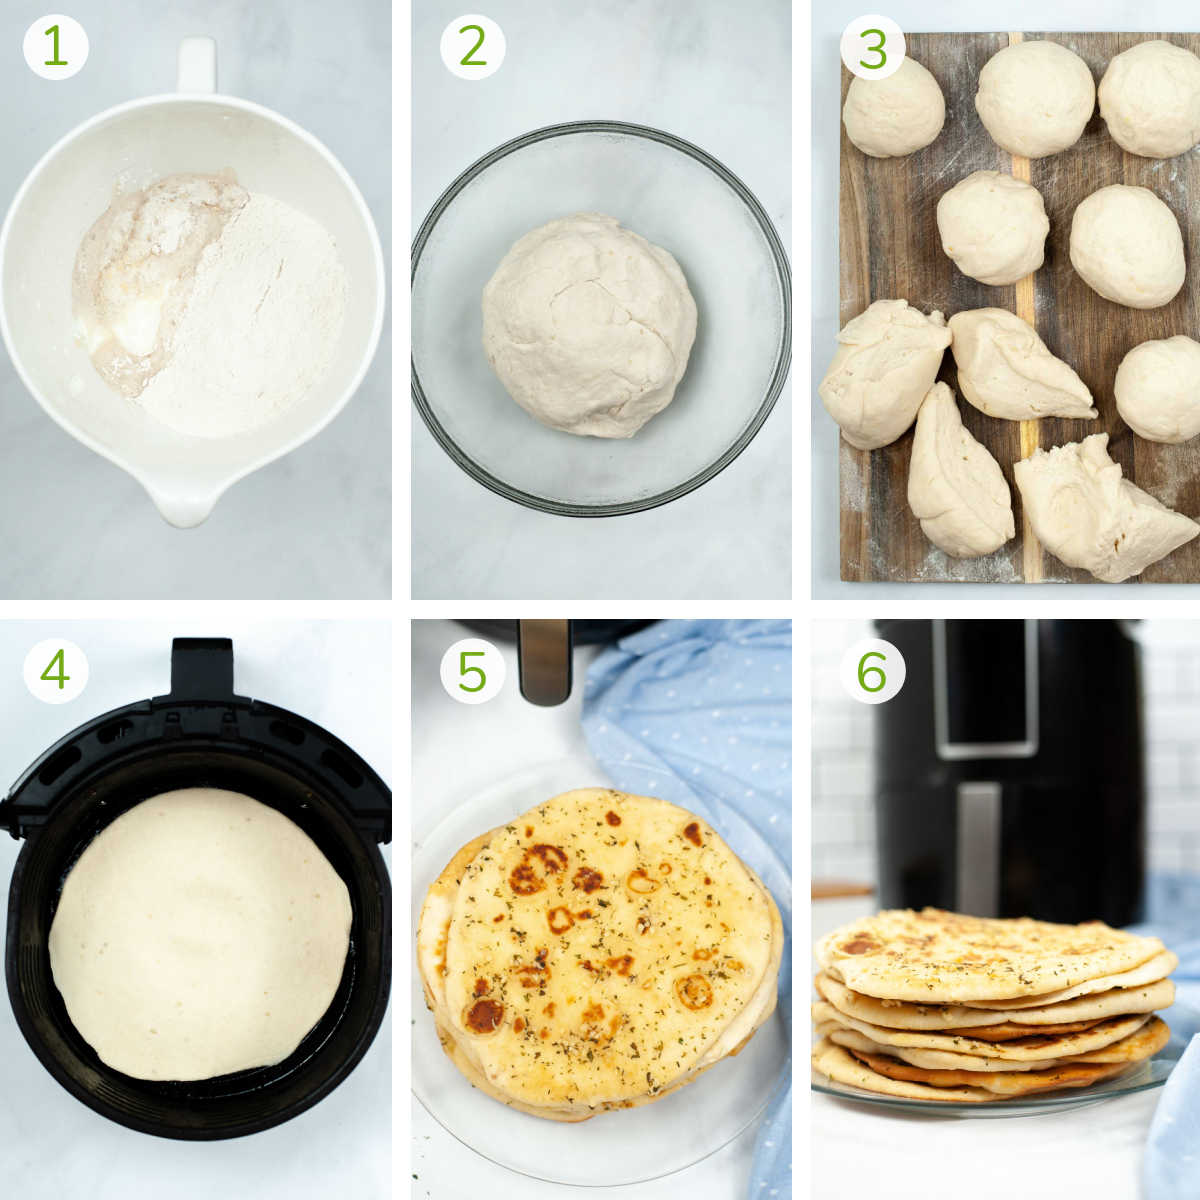 process photos showing mixing the dough, letting it rise, breaking into chunks and air frying.